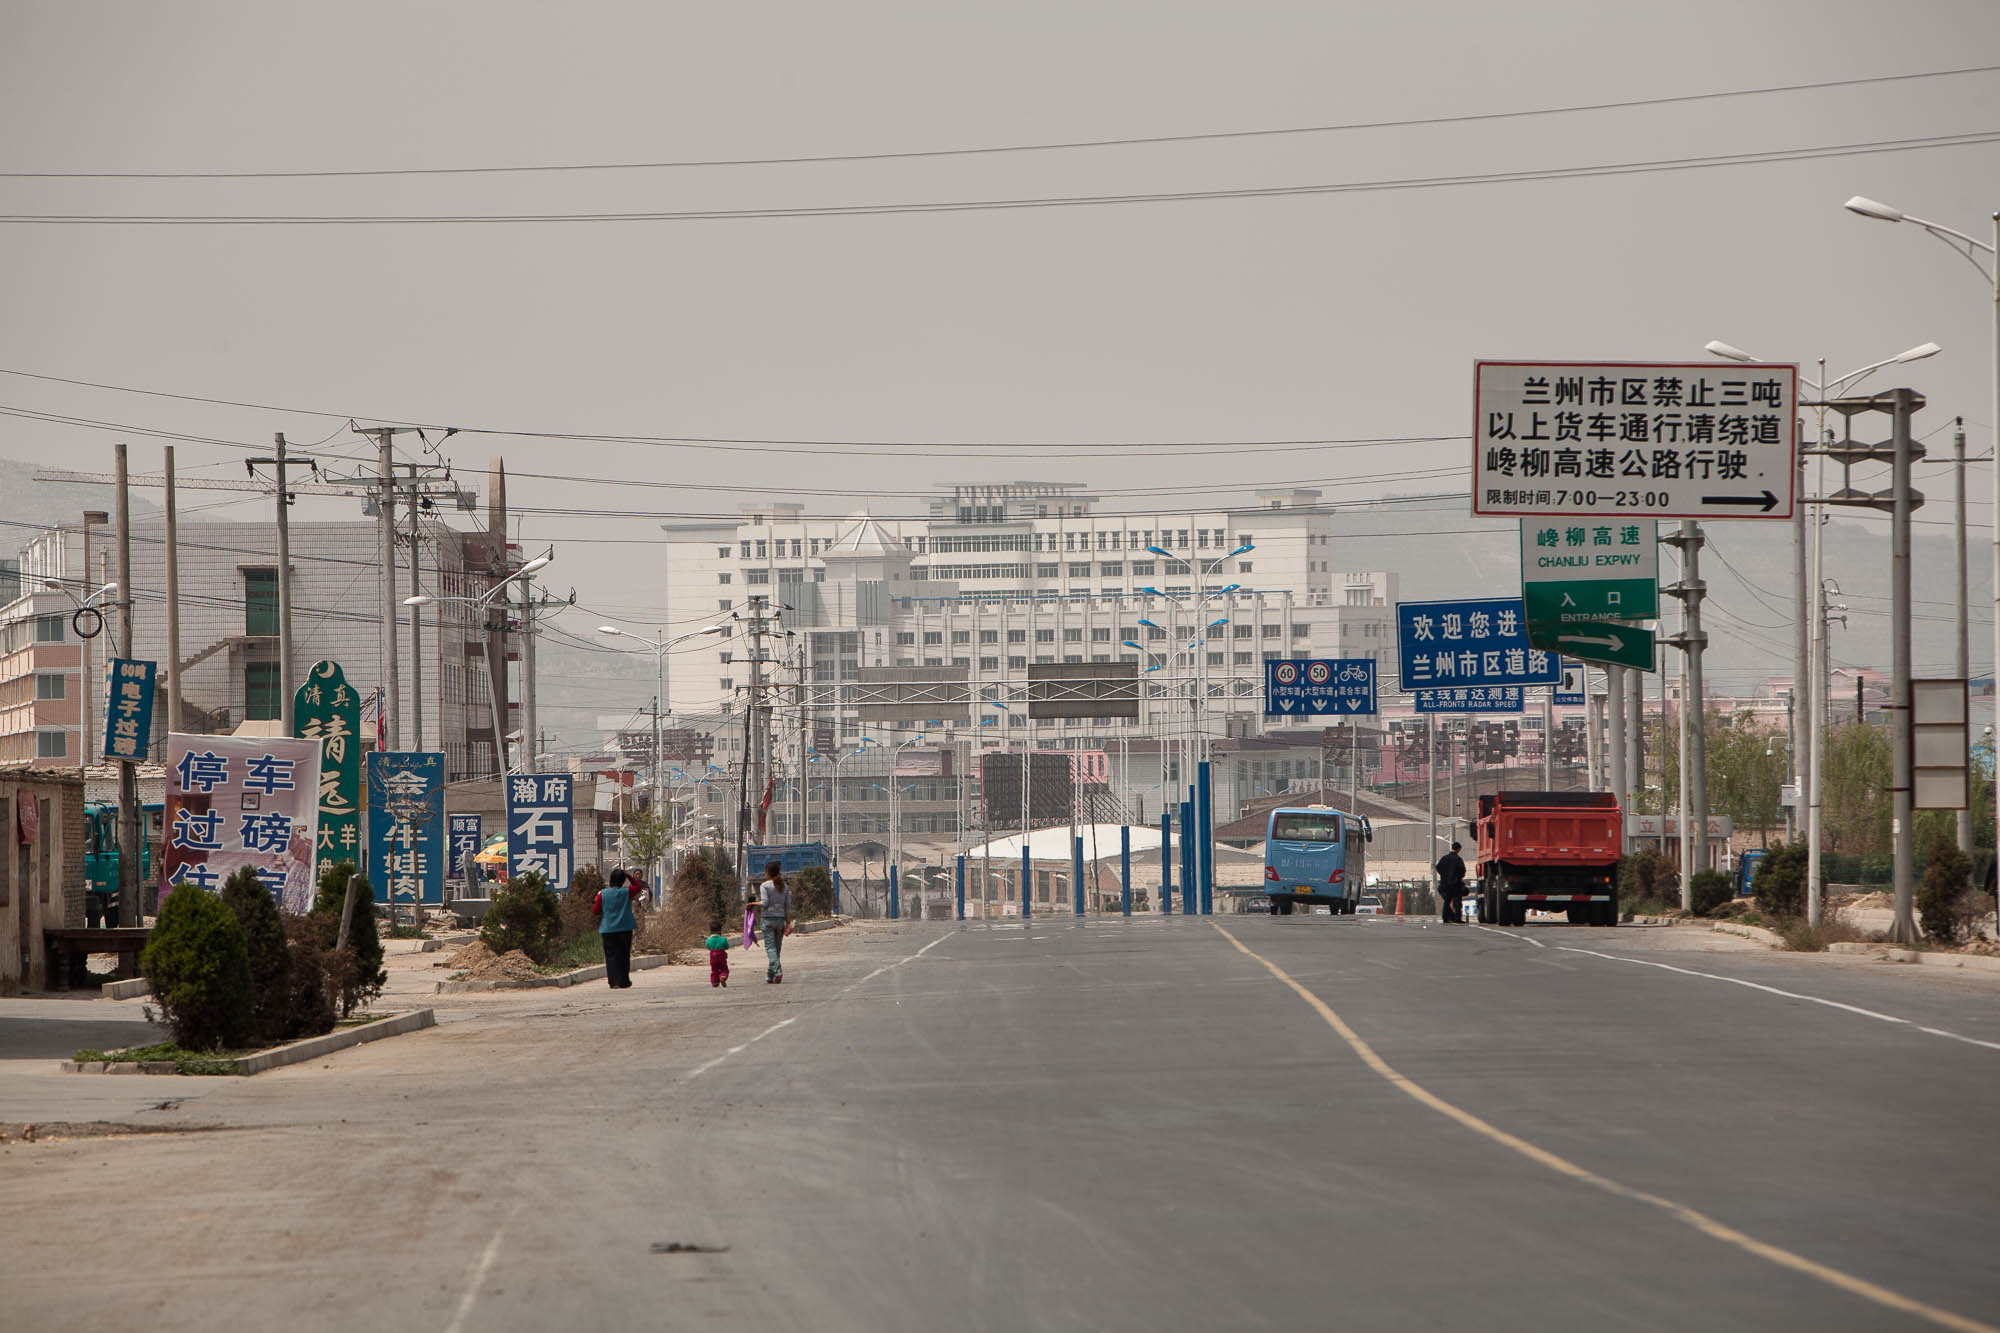 outskirts of Lanzhou